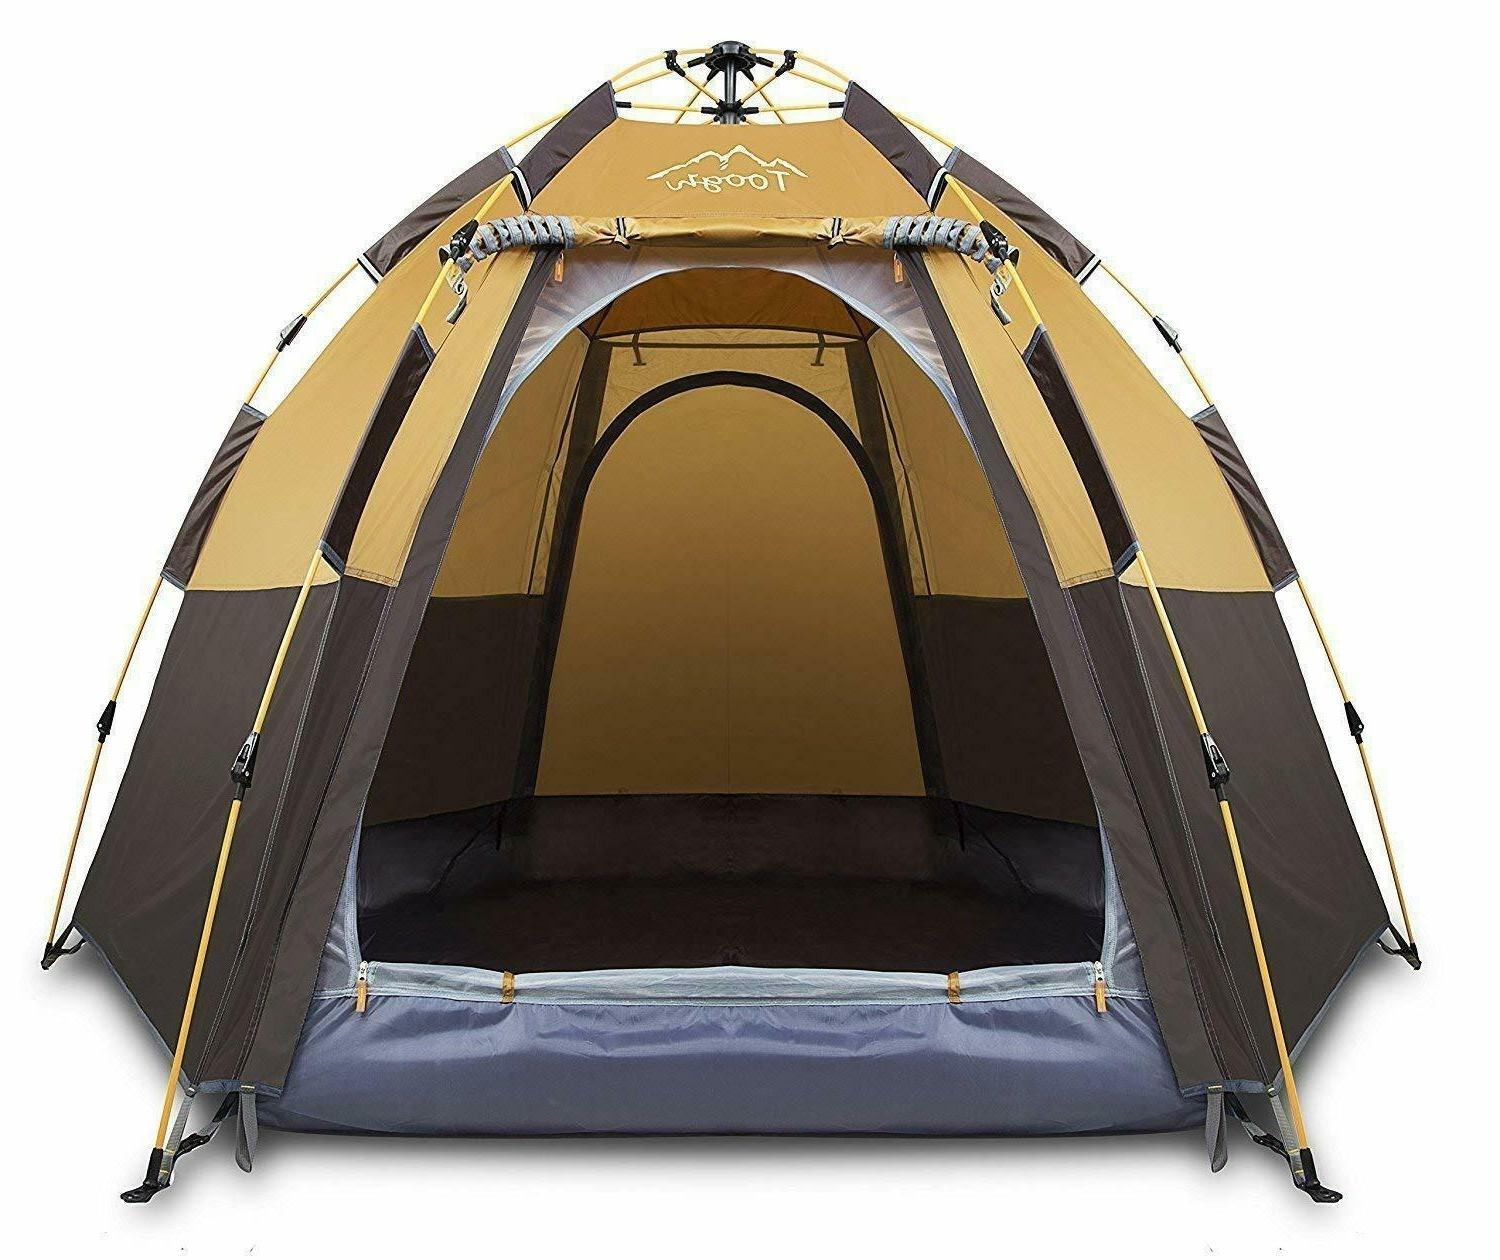 Toogh 3-4 Person Camping Tent Automatic Pop-Up Backpacking W